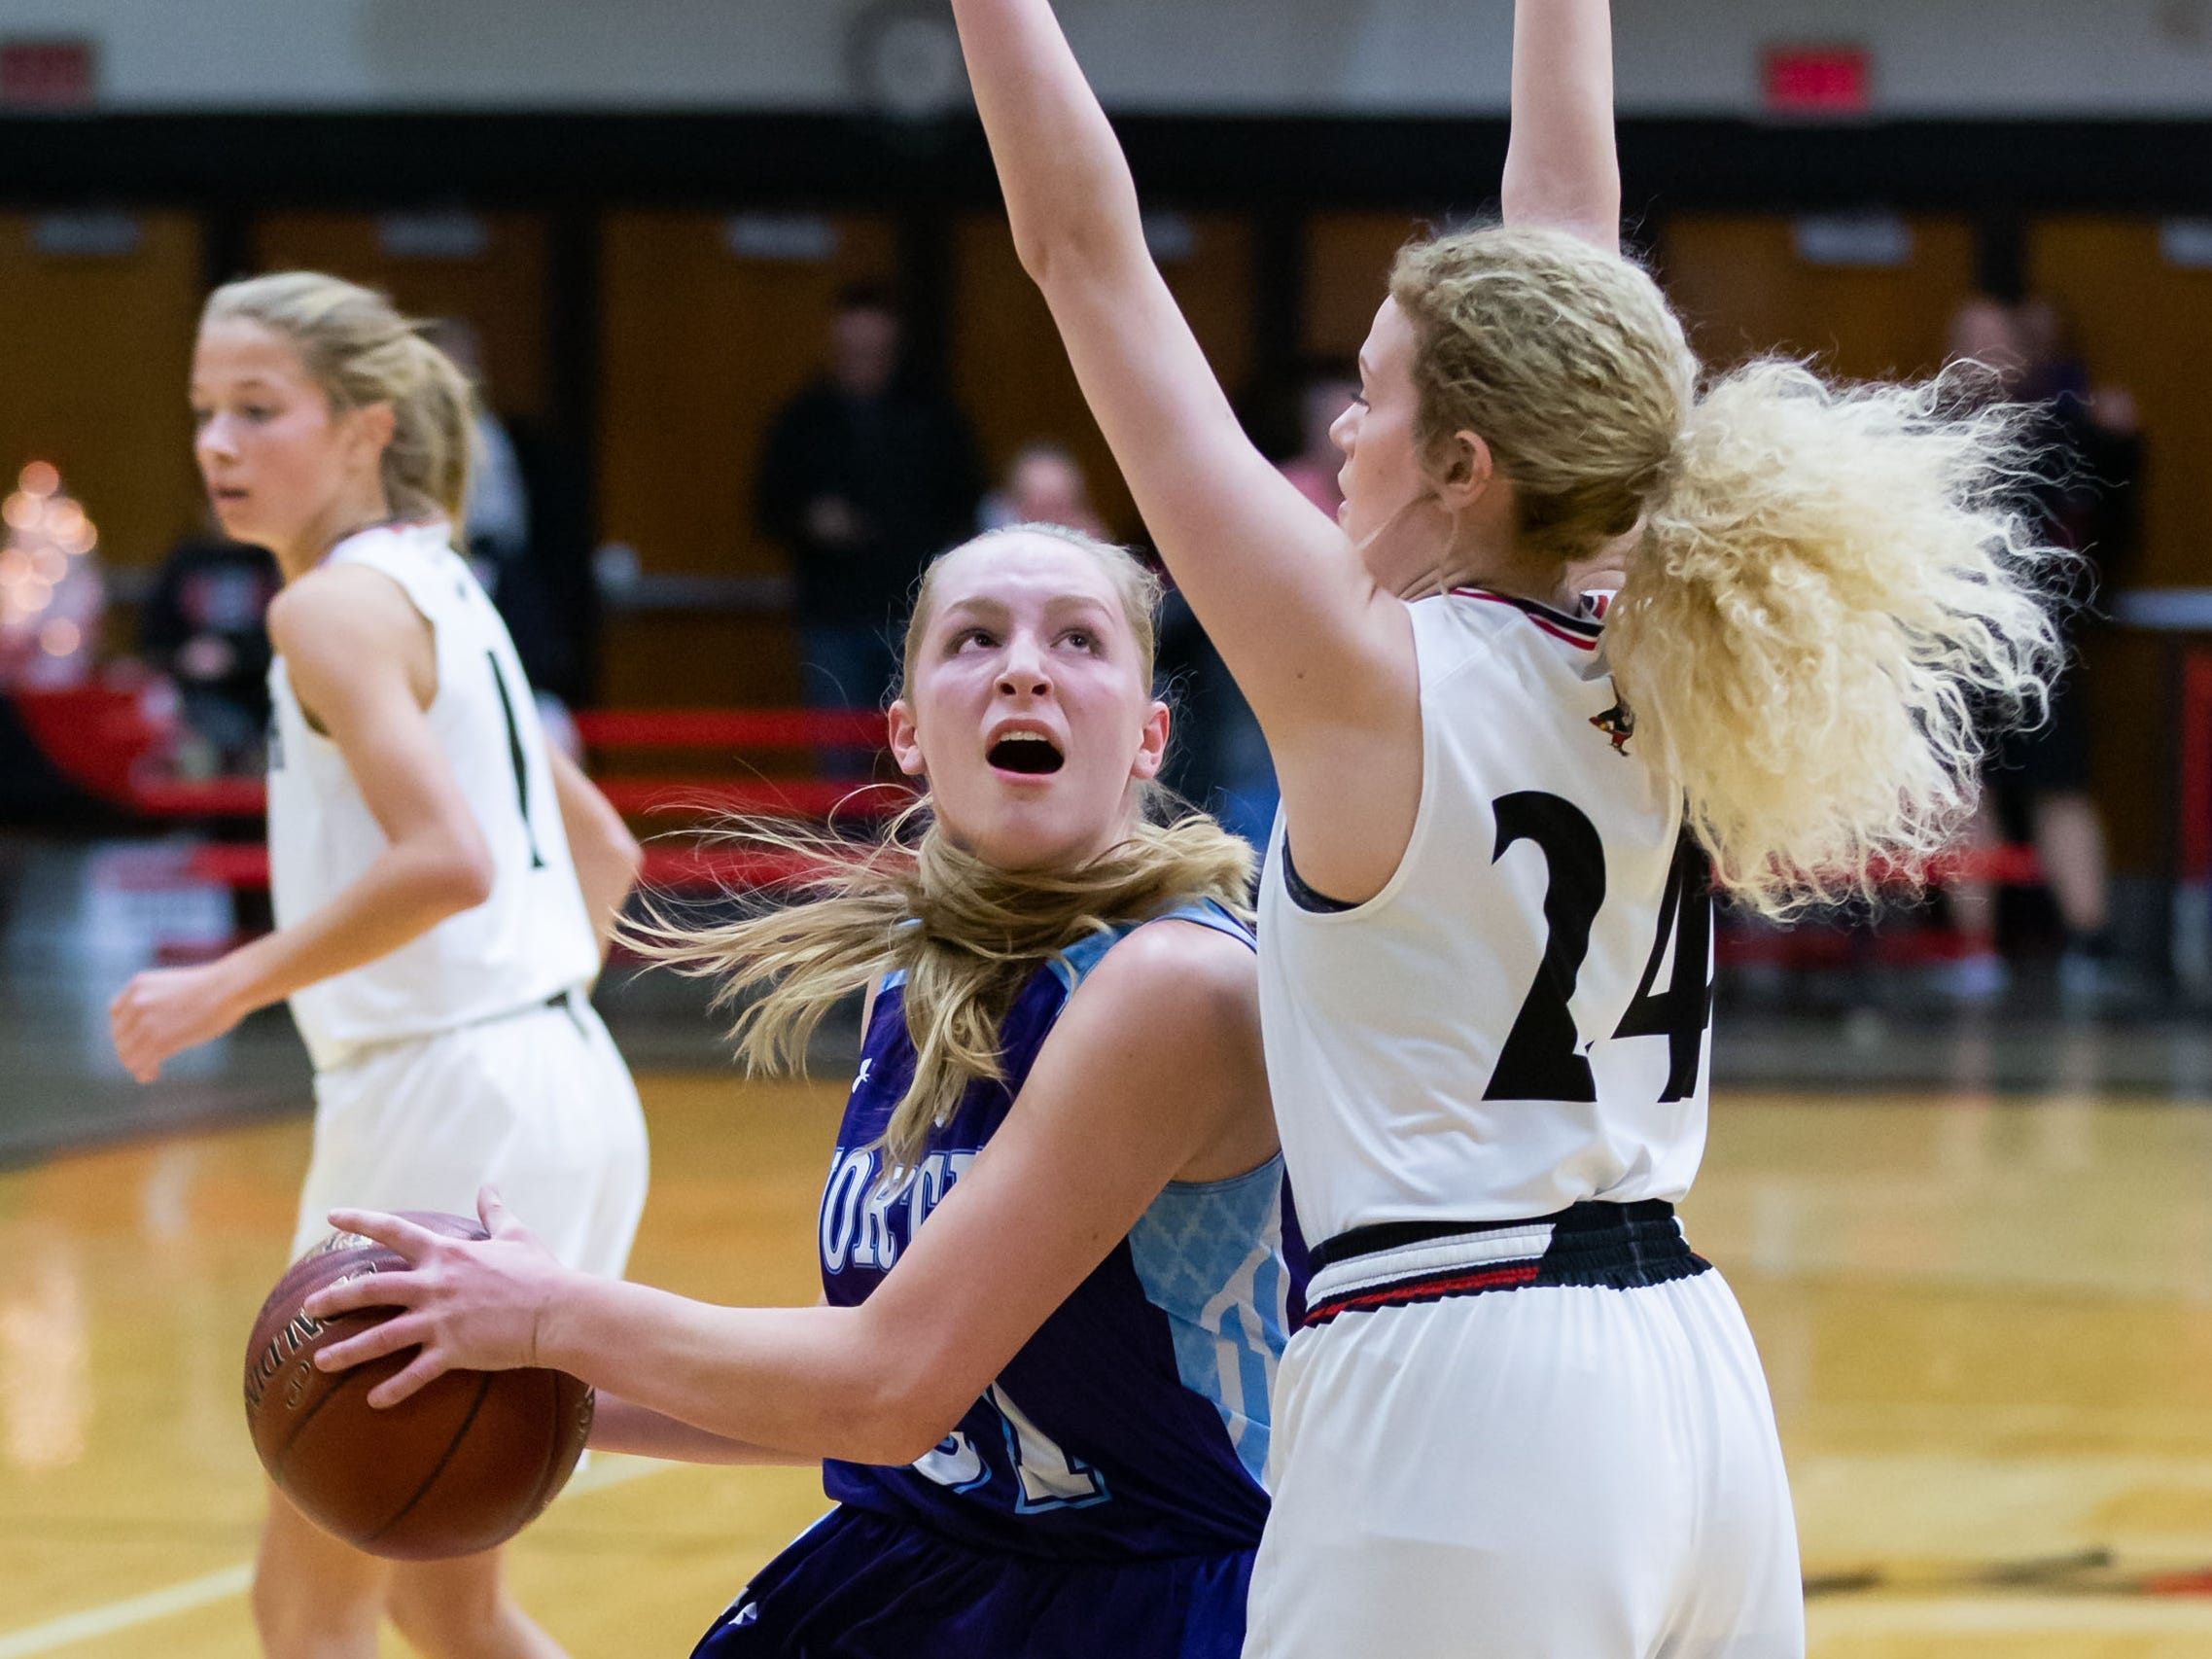 Waukesha North sophomore Kelly McIntyre (left) works to get past Waukesha South's Olivia Schumacher (24) during the game at South on Tuesday, Dec. 4, 2018.